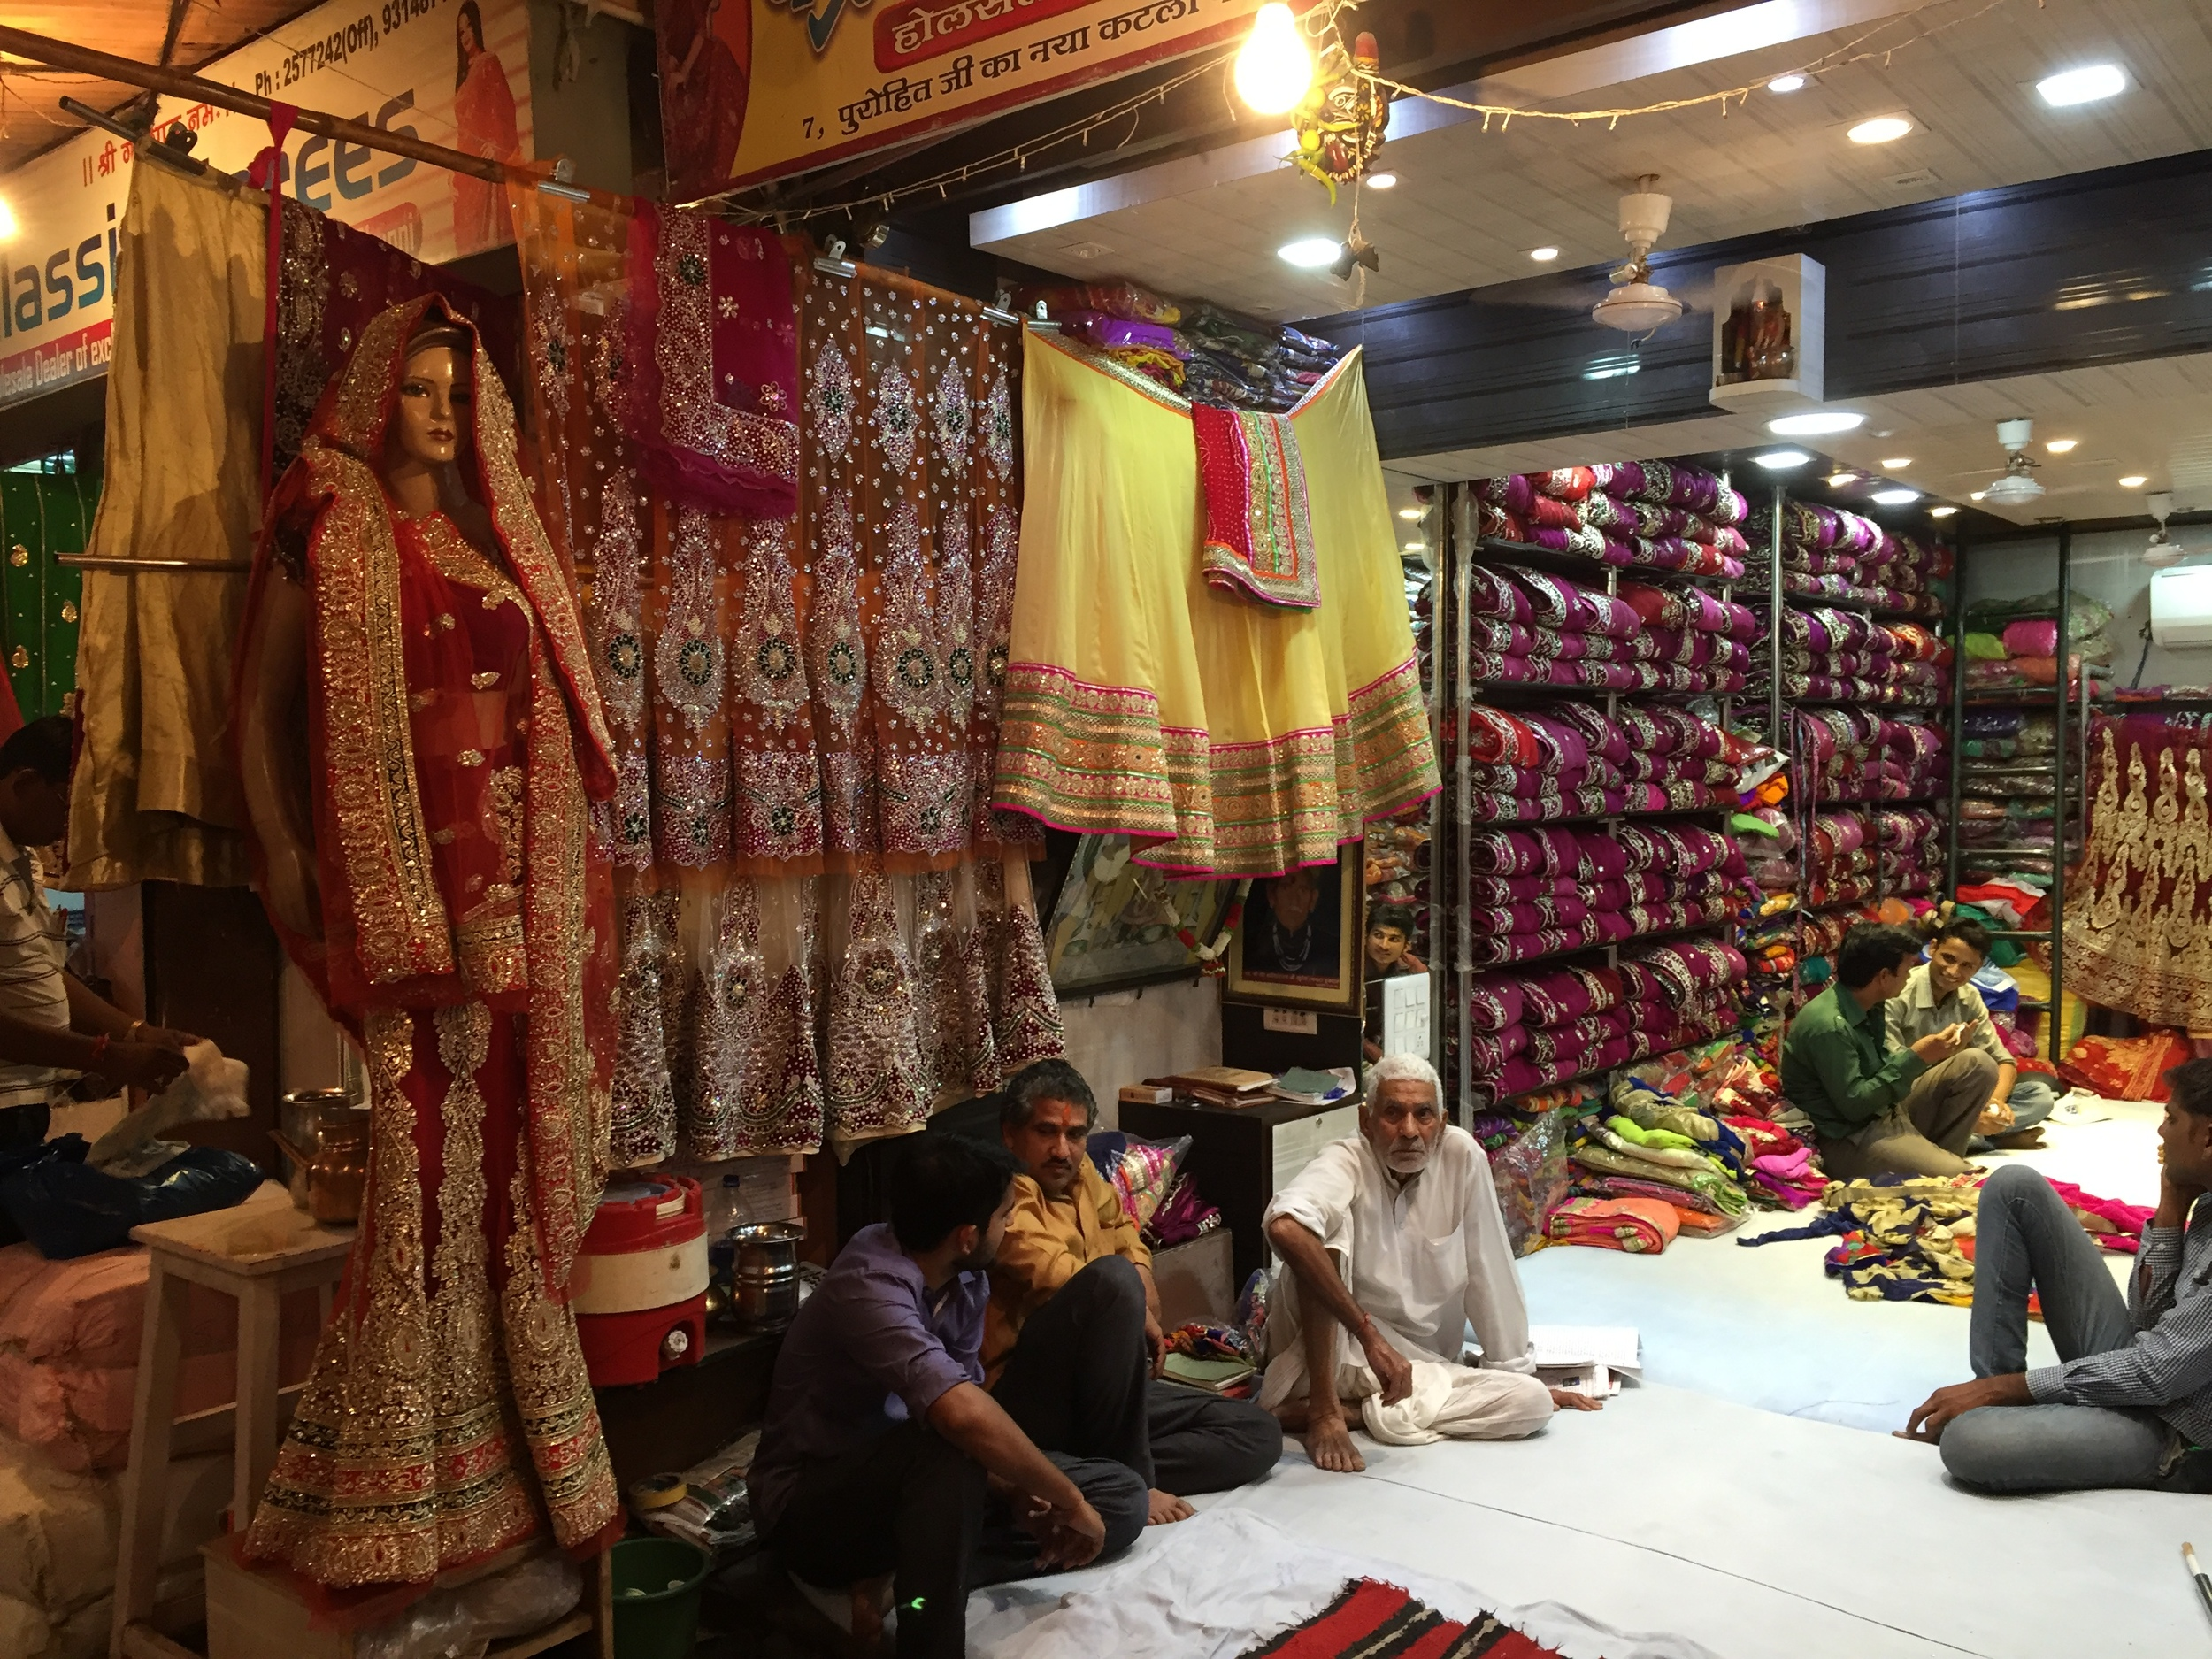 Vendors waiting to make a deal at the Johari Bazaar in Jaipur.